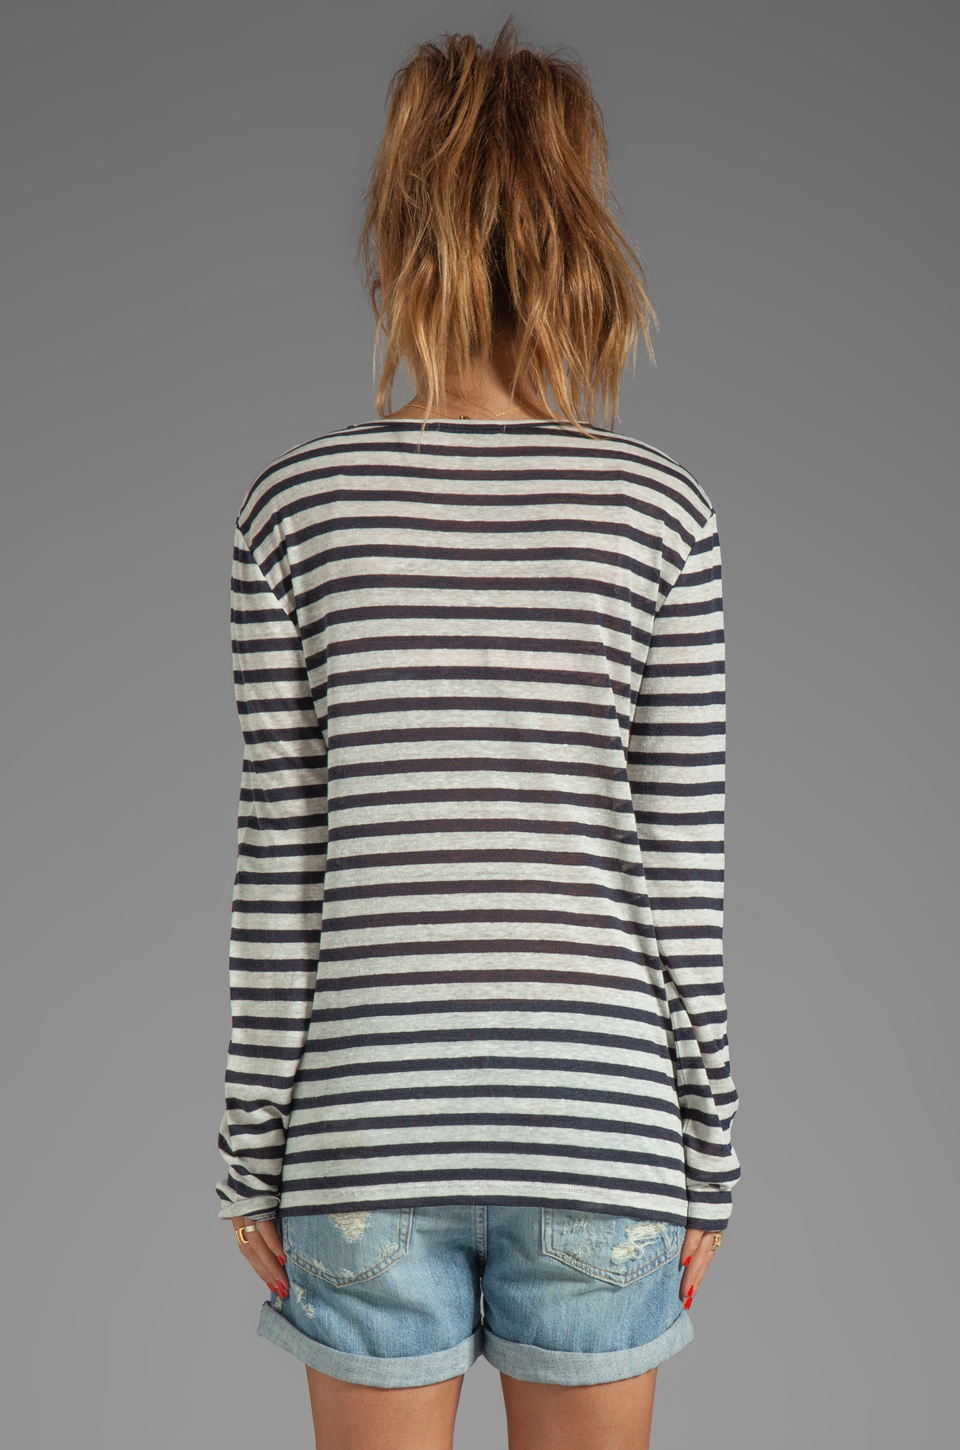 T by Alexander Wang Linen Stripe Long Sleeve Tee in Ink/Ivory